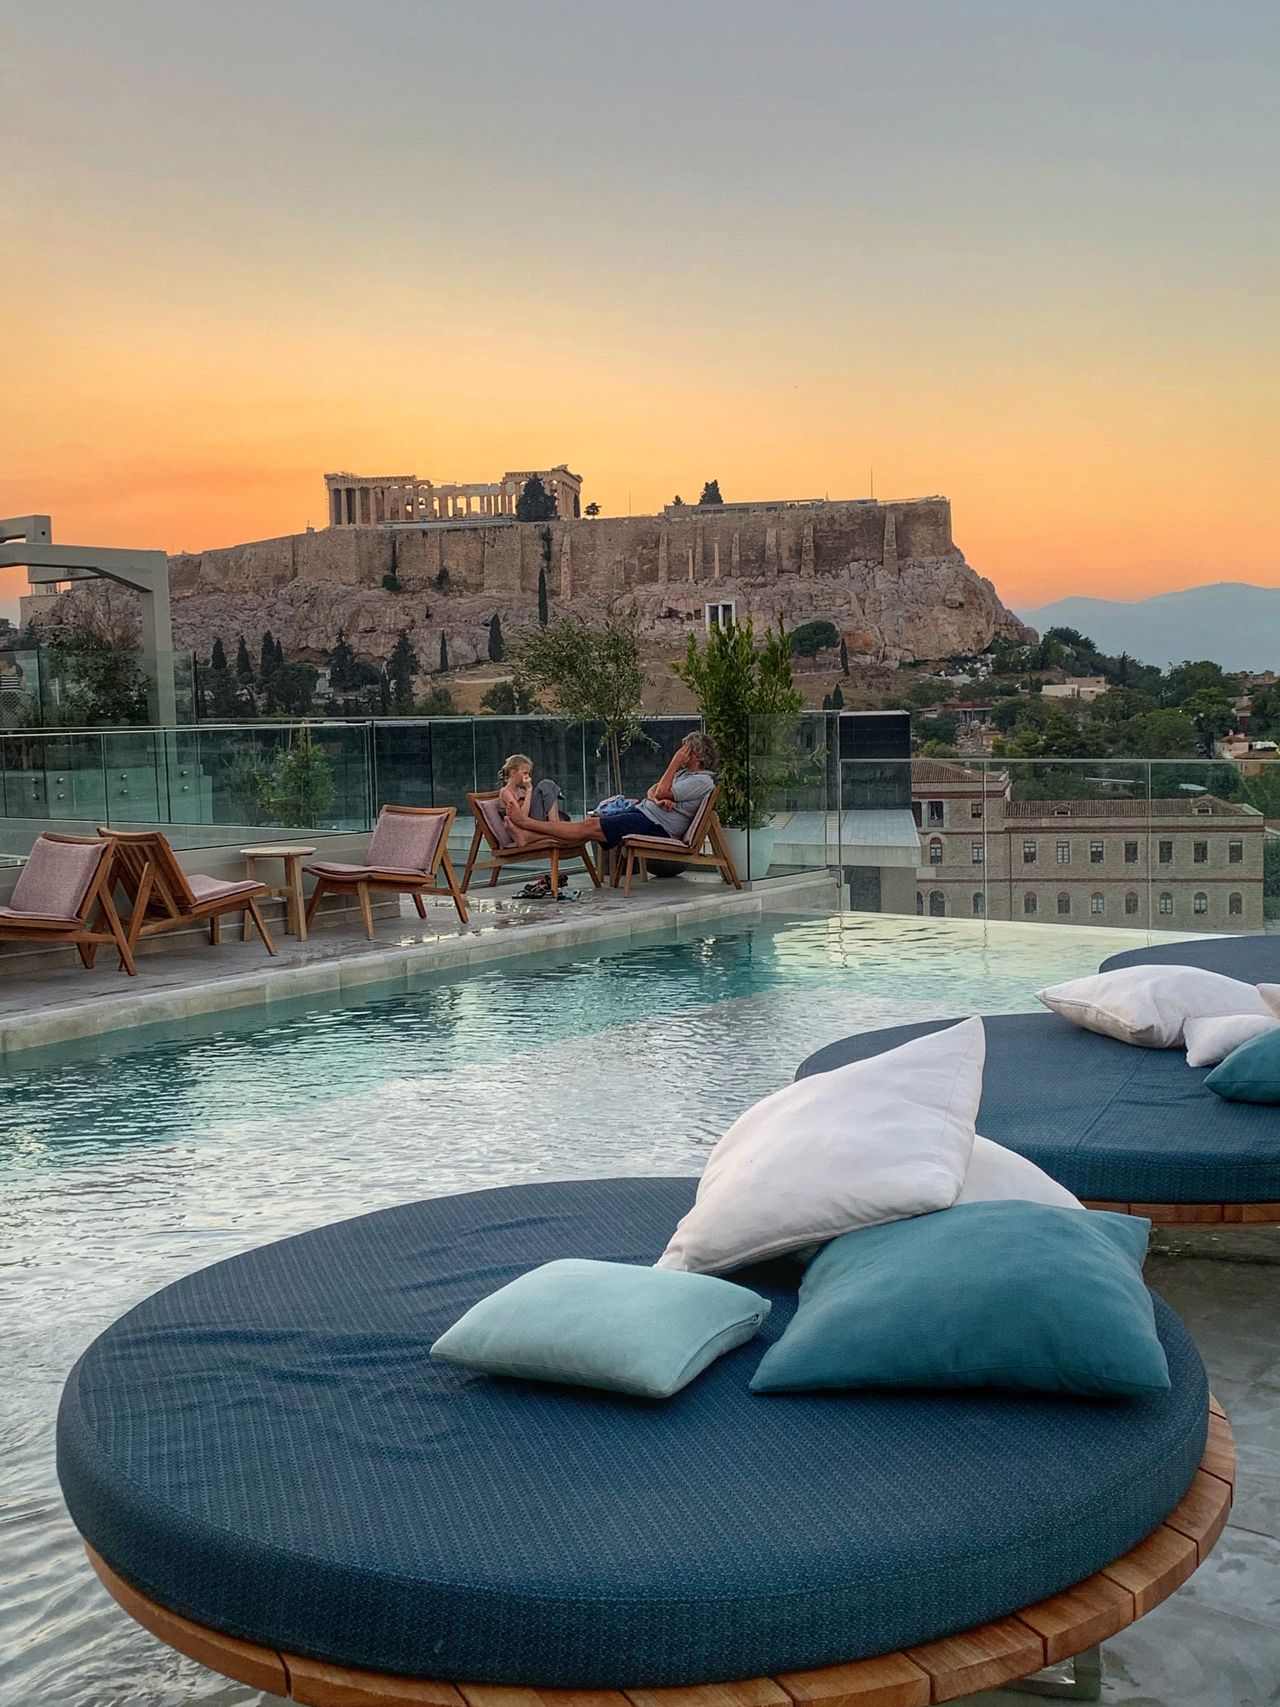 Coco Mat Bc Athens A Sleeping Experience With Acropolis View